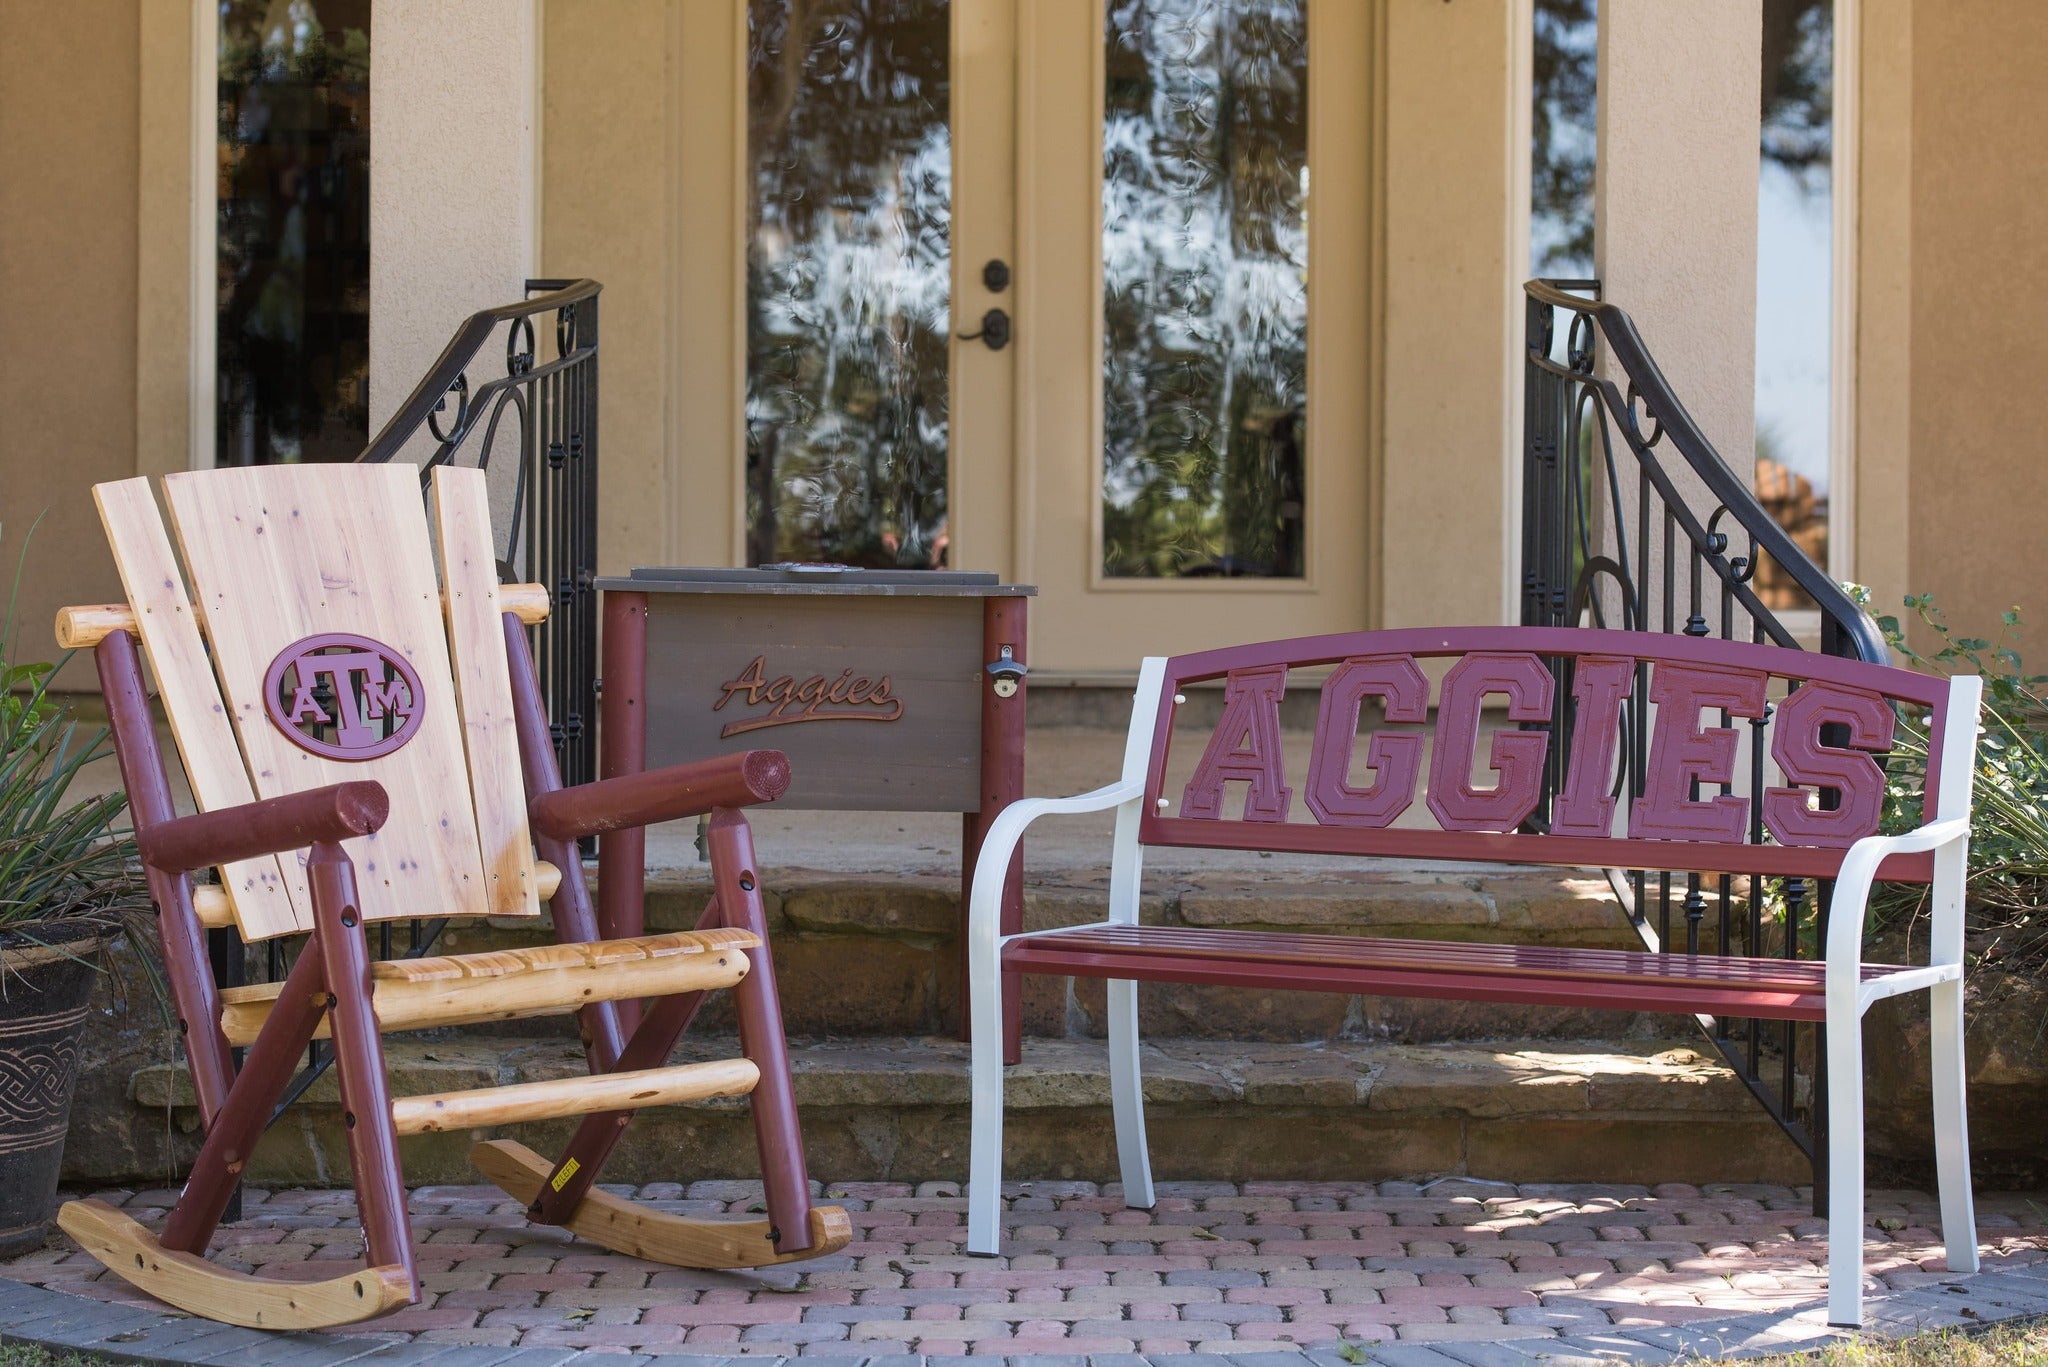 Collegiate Licensed Rocking Chair, Country Cooler and Metal Bench